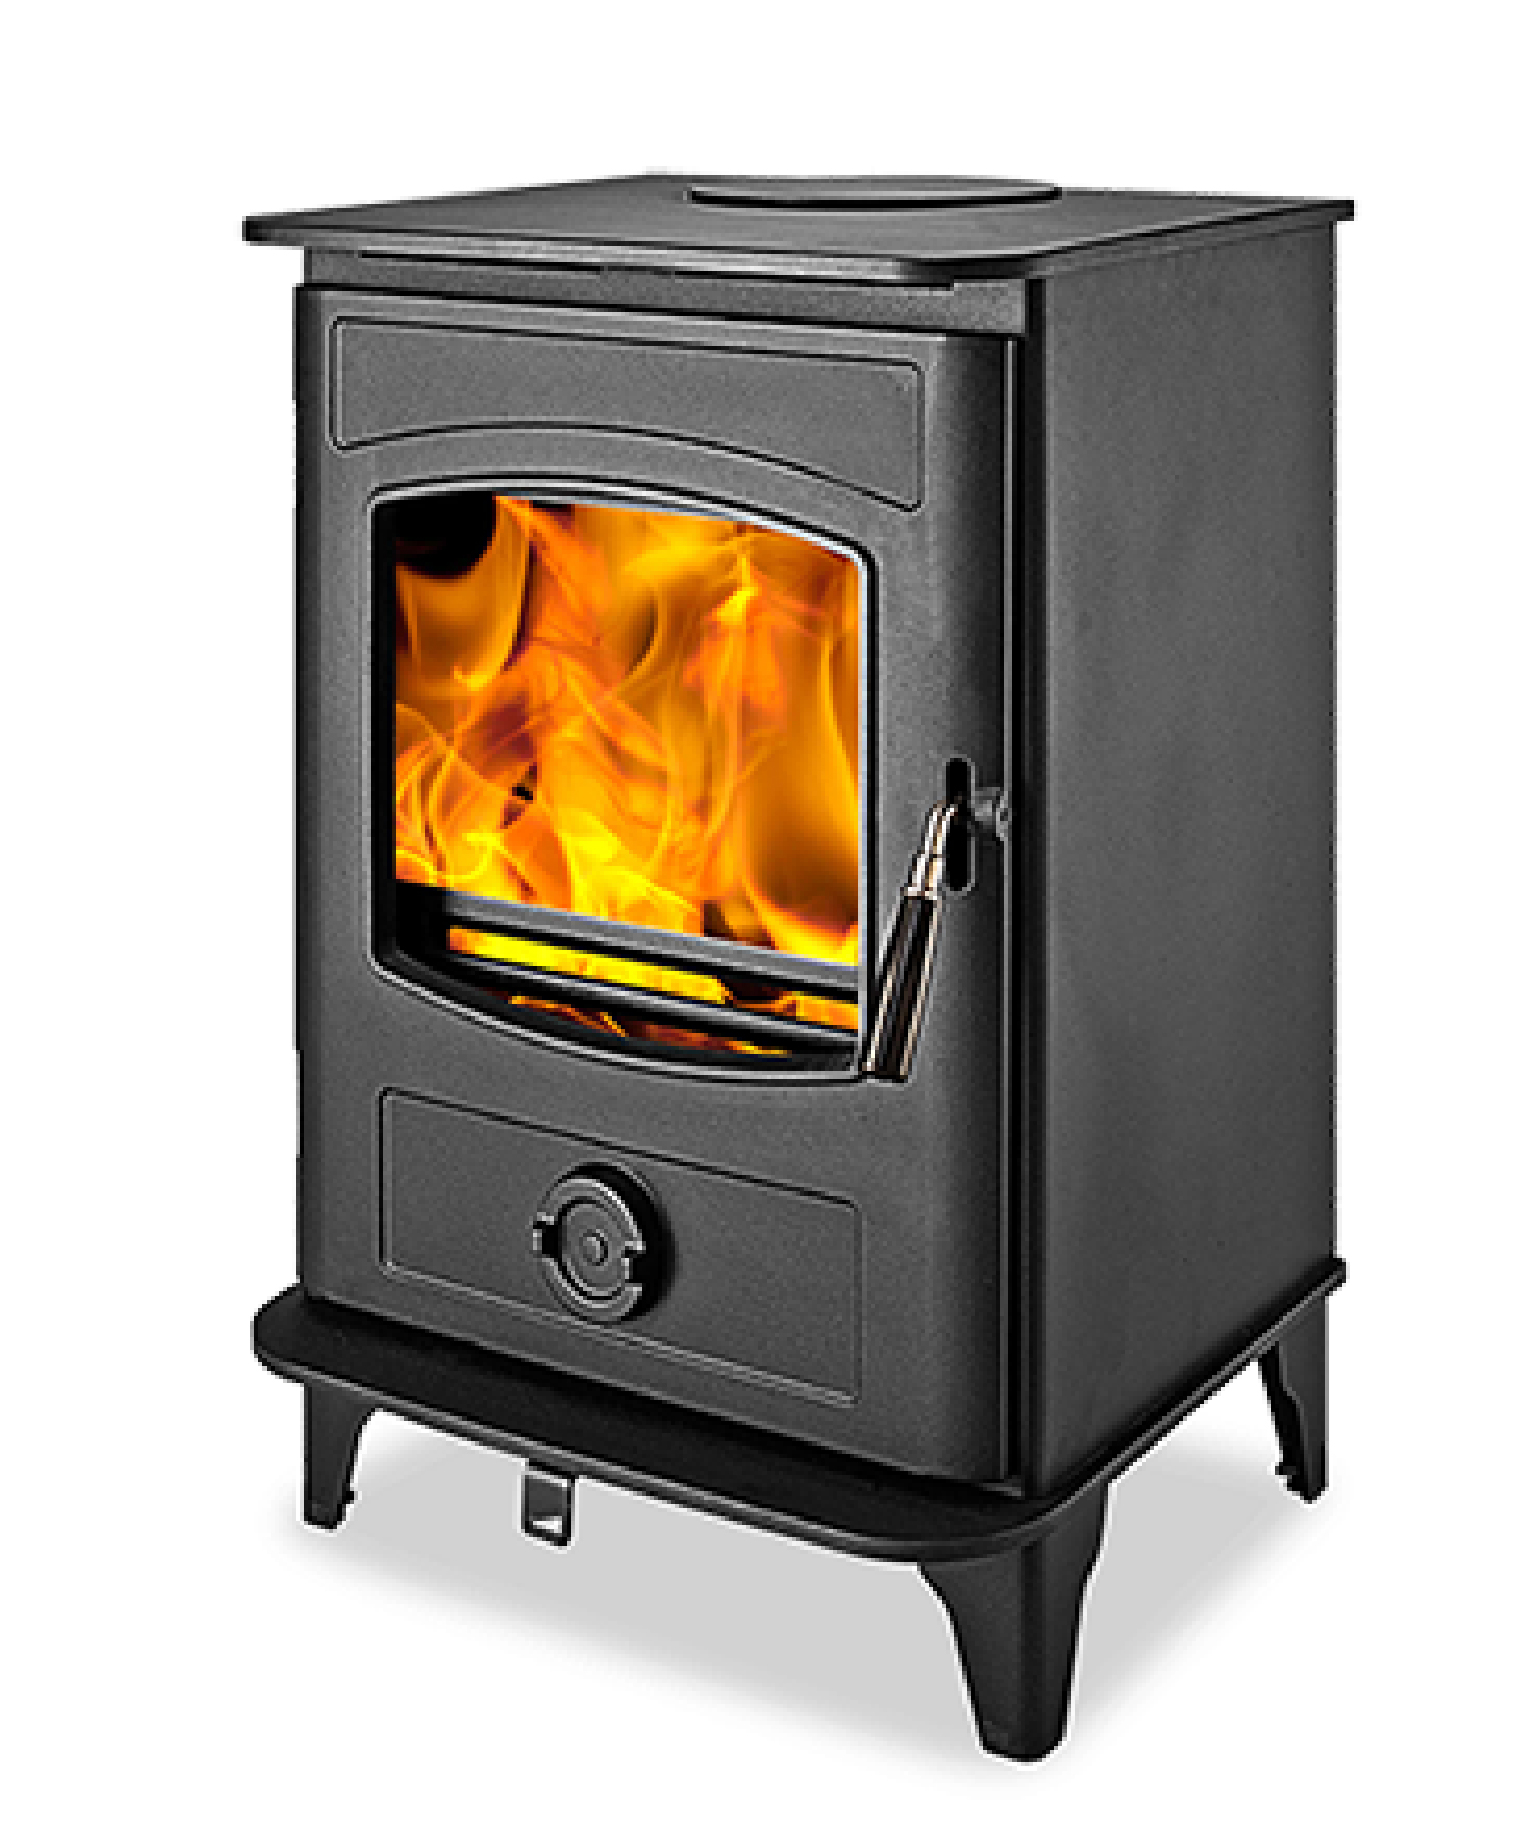 HI FLAME WOOD BURNING STOVE